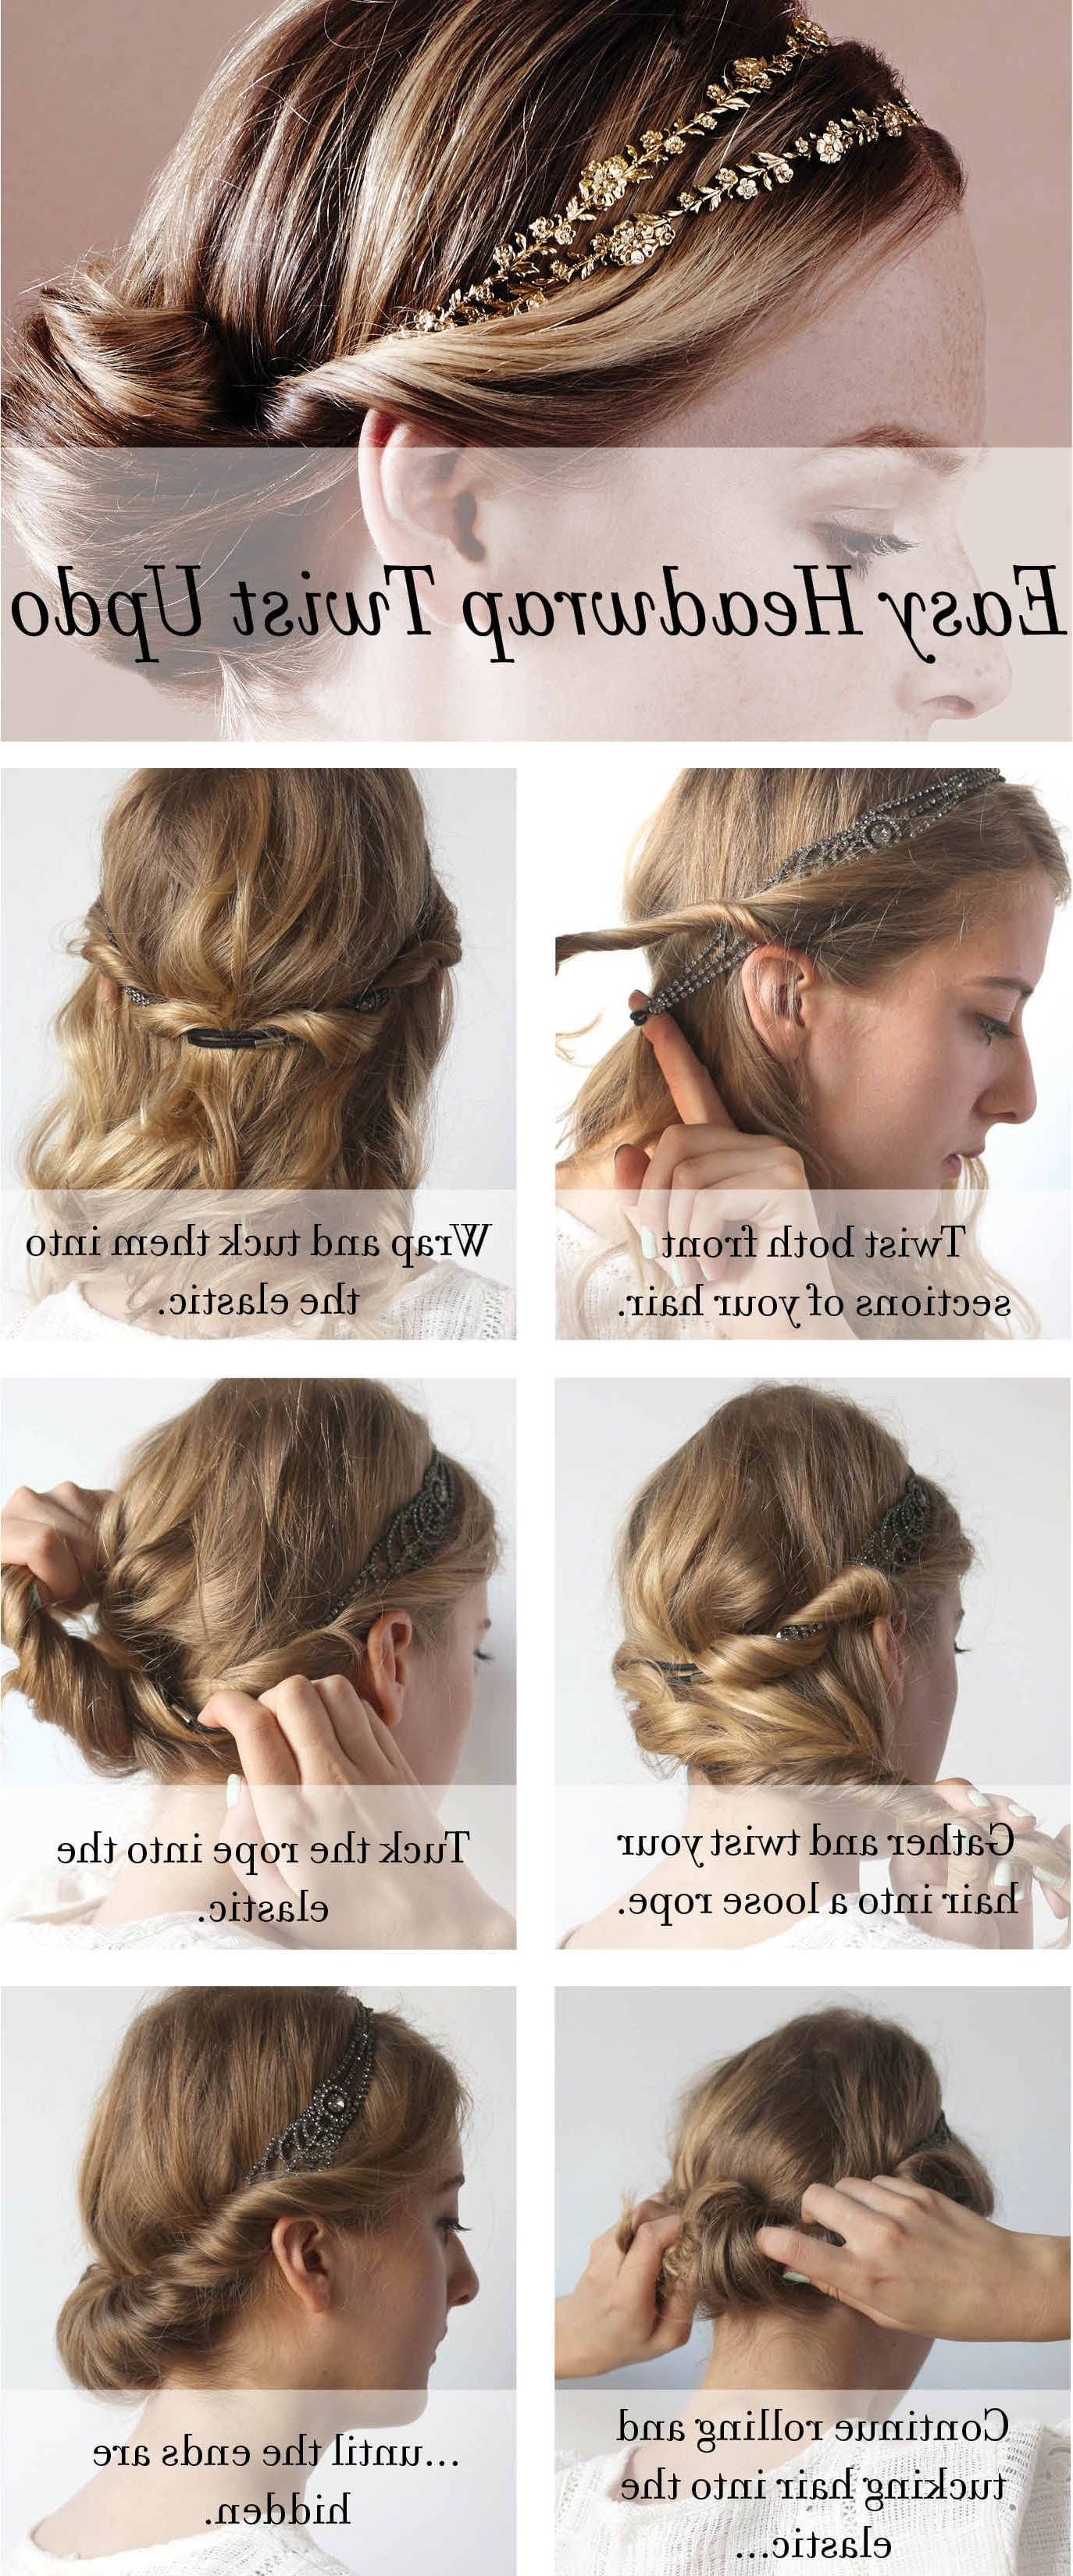 How To Make An Easy Headwrap Twist Updo With Any Of The Pertaining To Popular Loose Twist Hairstyles With Hair Wrap (View 13 of 20)